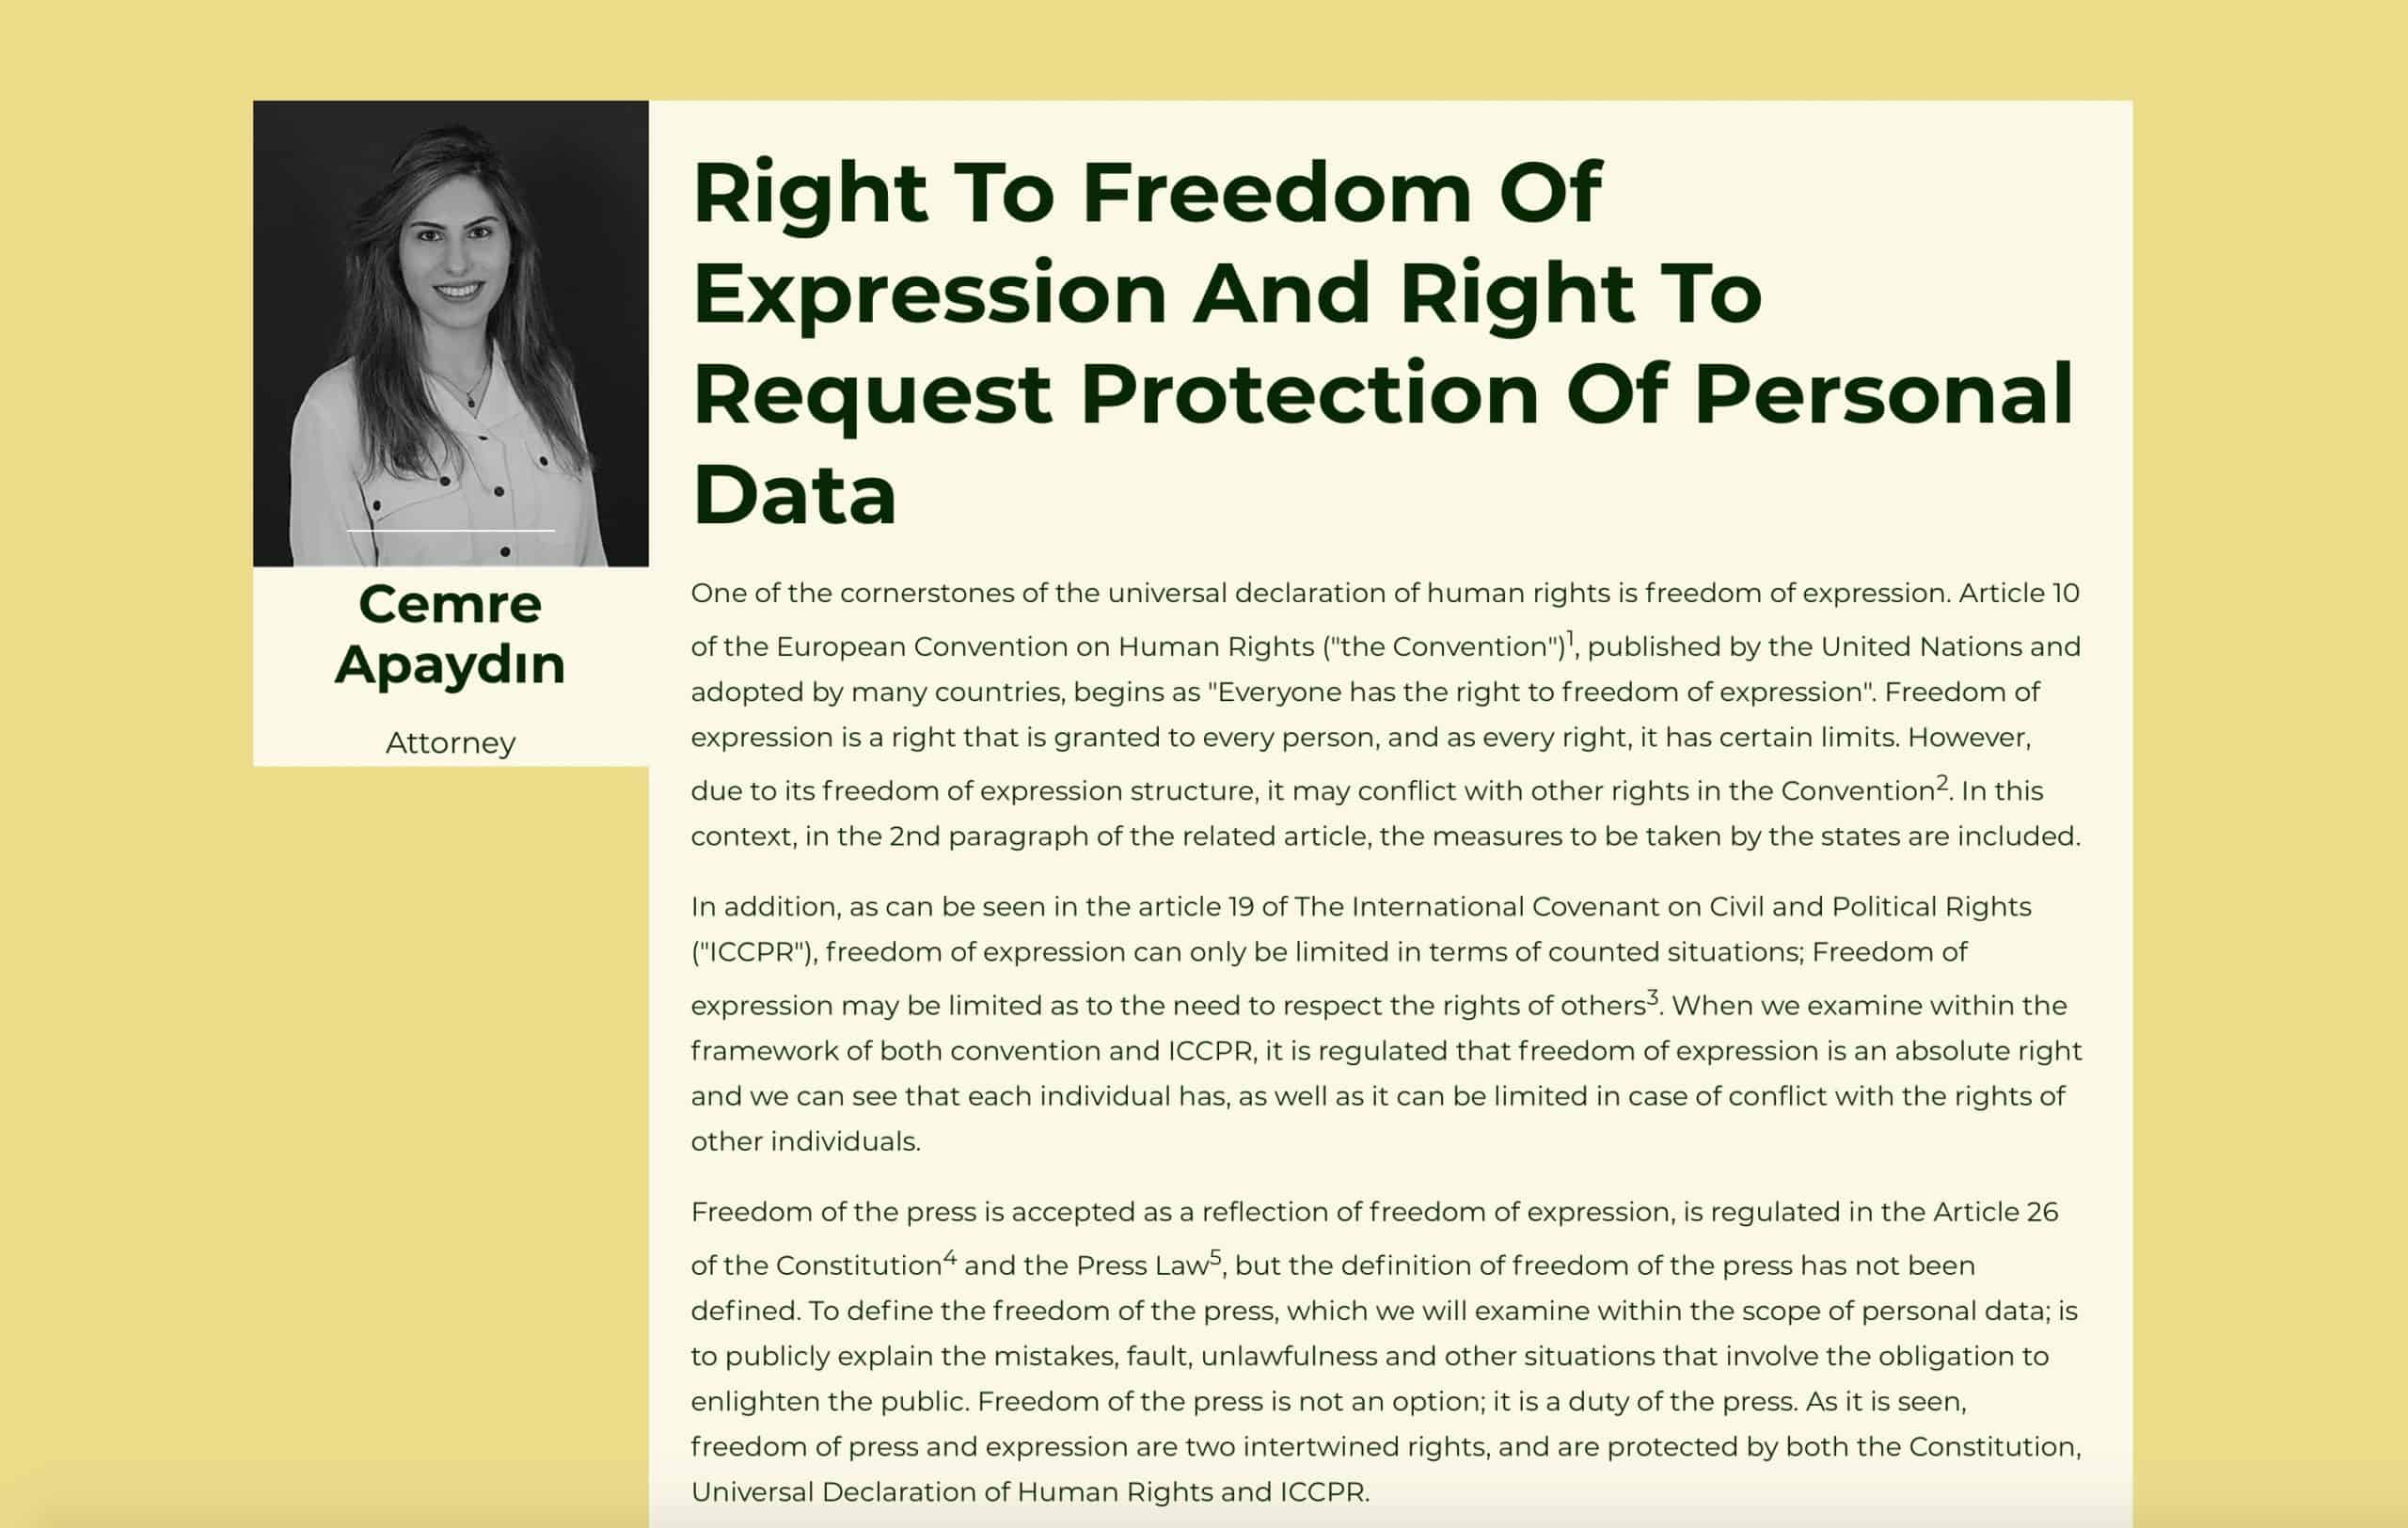 Right To Freedom Of Expression And Right To Request Protection Of Personal Data